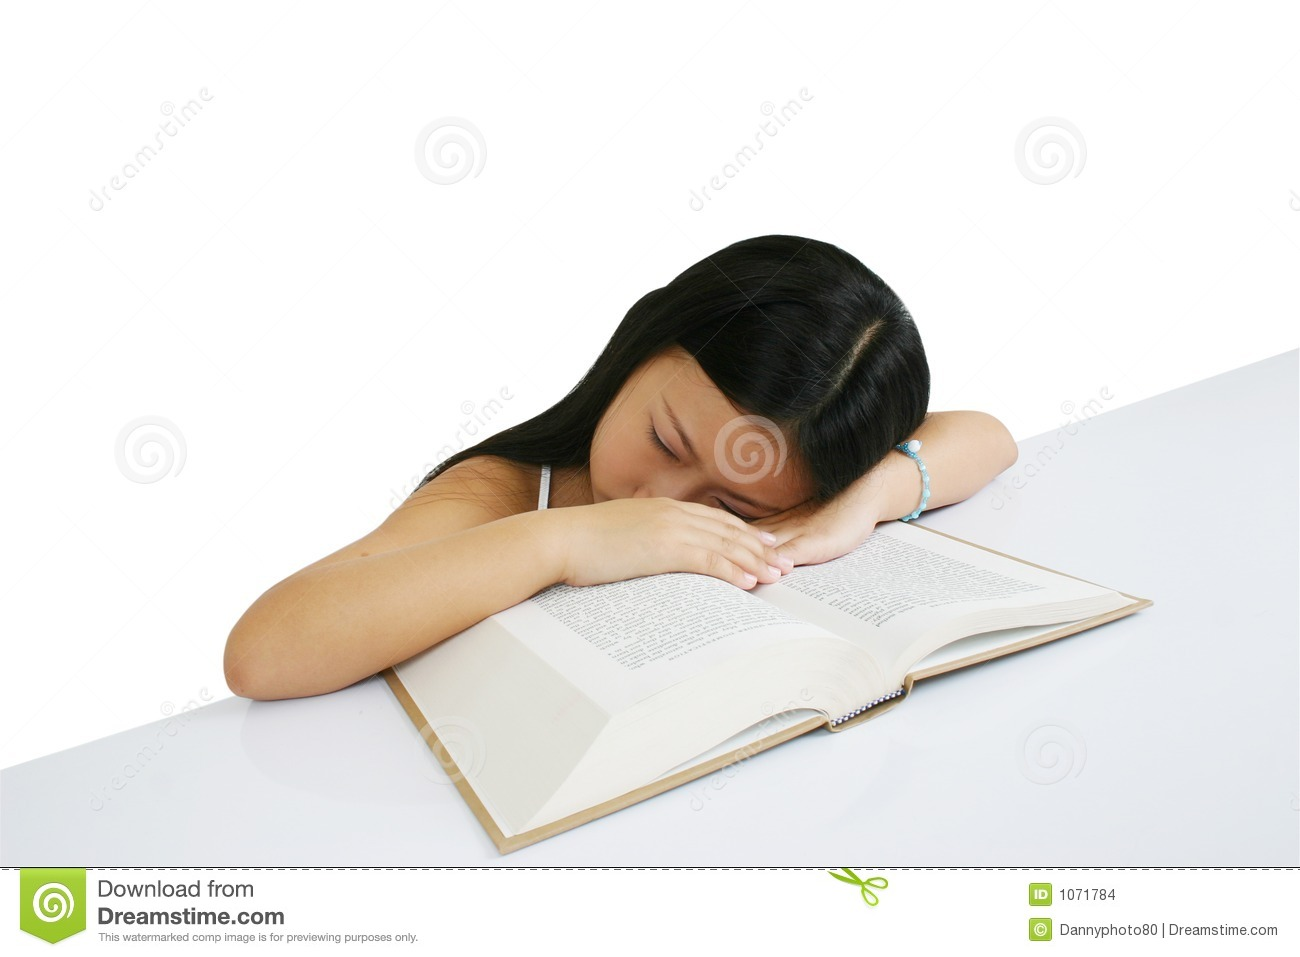 Young girl sleeping on a book